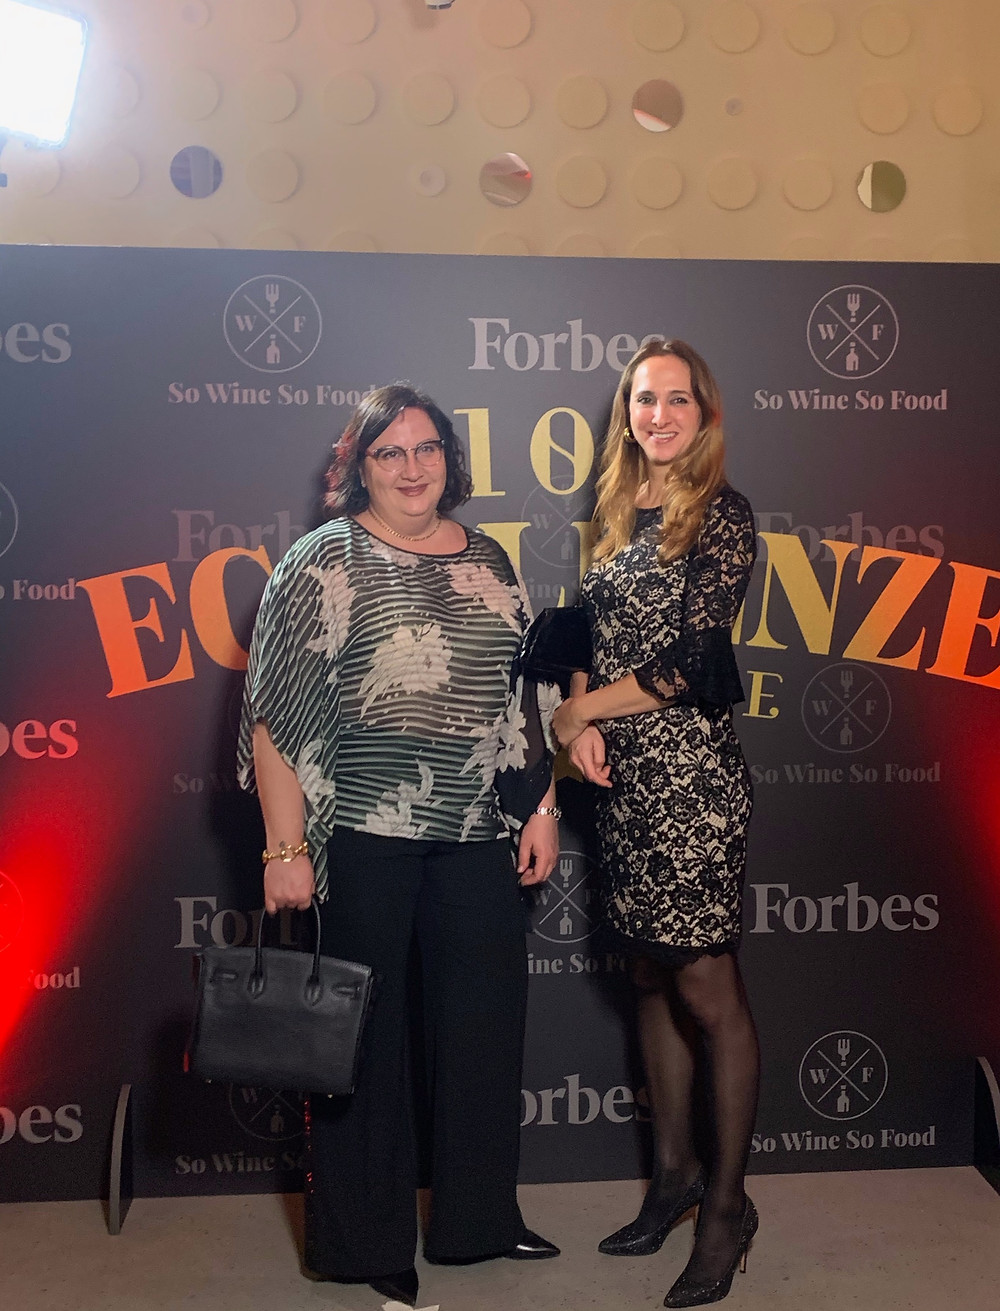 Elena Corte and Paola Corte at Forbes Party